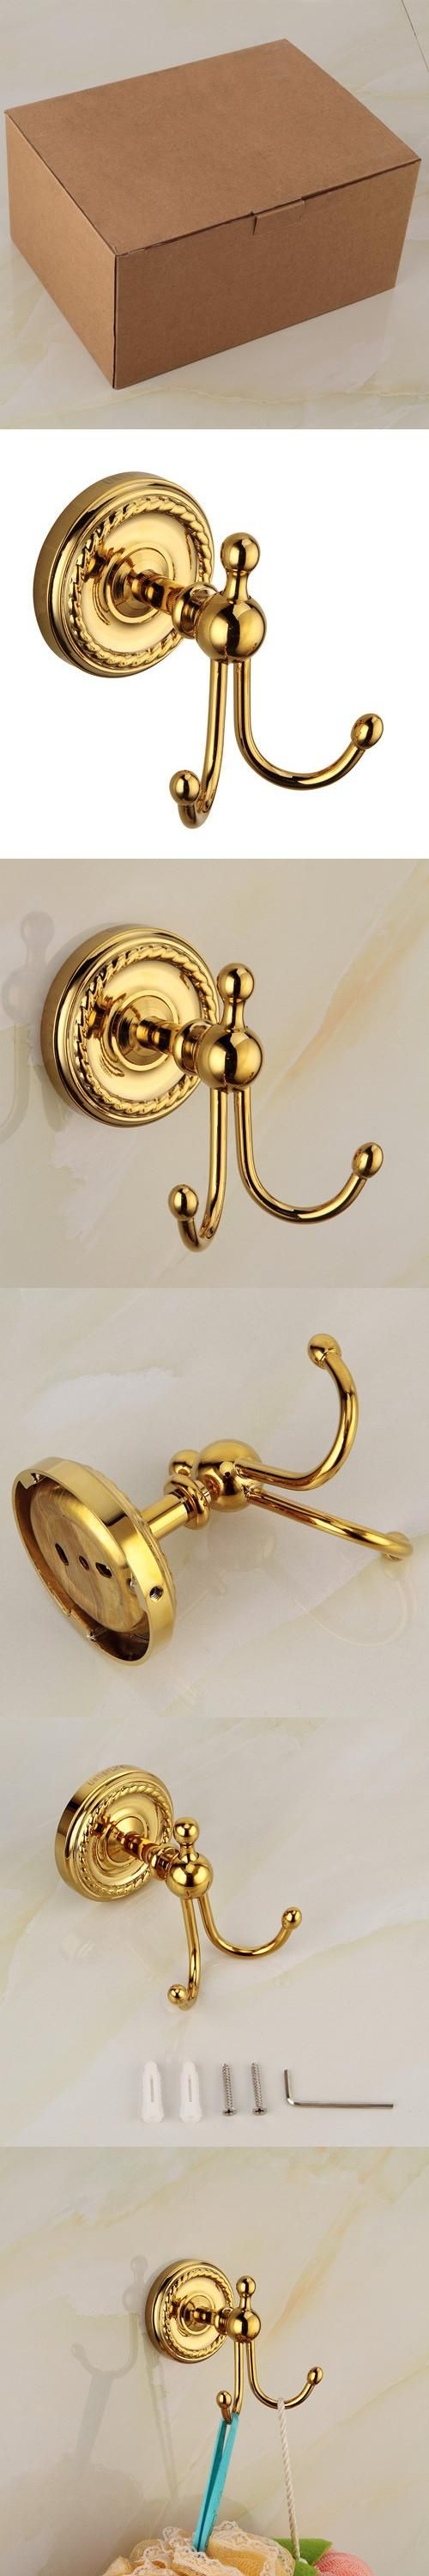 Free Shipping,Retail&Wholesale Gold robe hook Bathroom Kitchen Organizer Hanger wall cabide Hooks towel hook 2 hooks